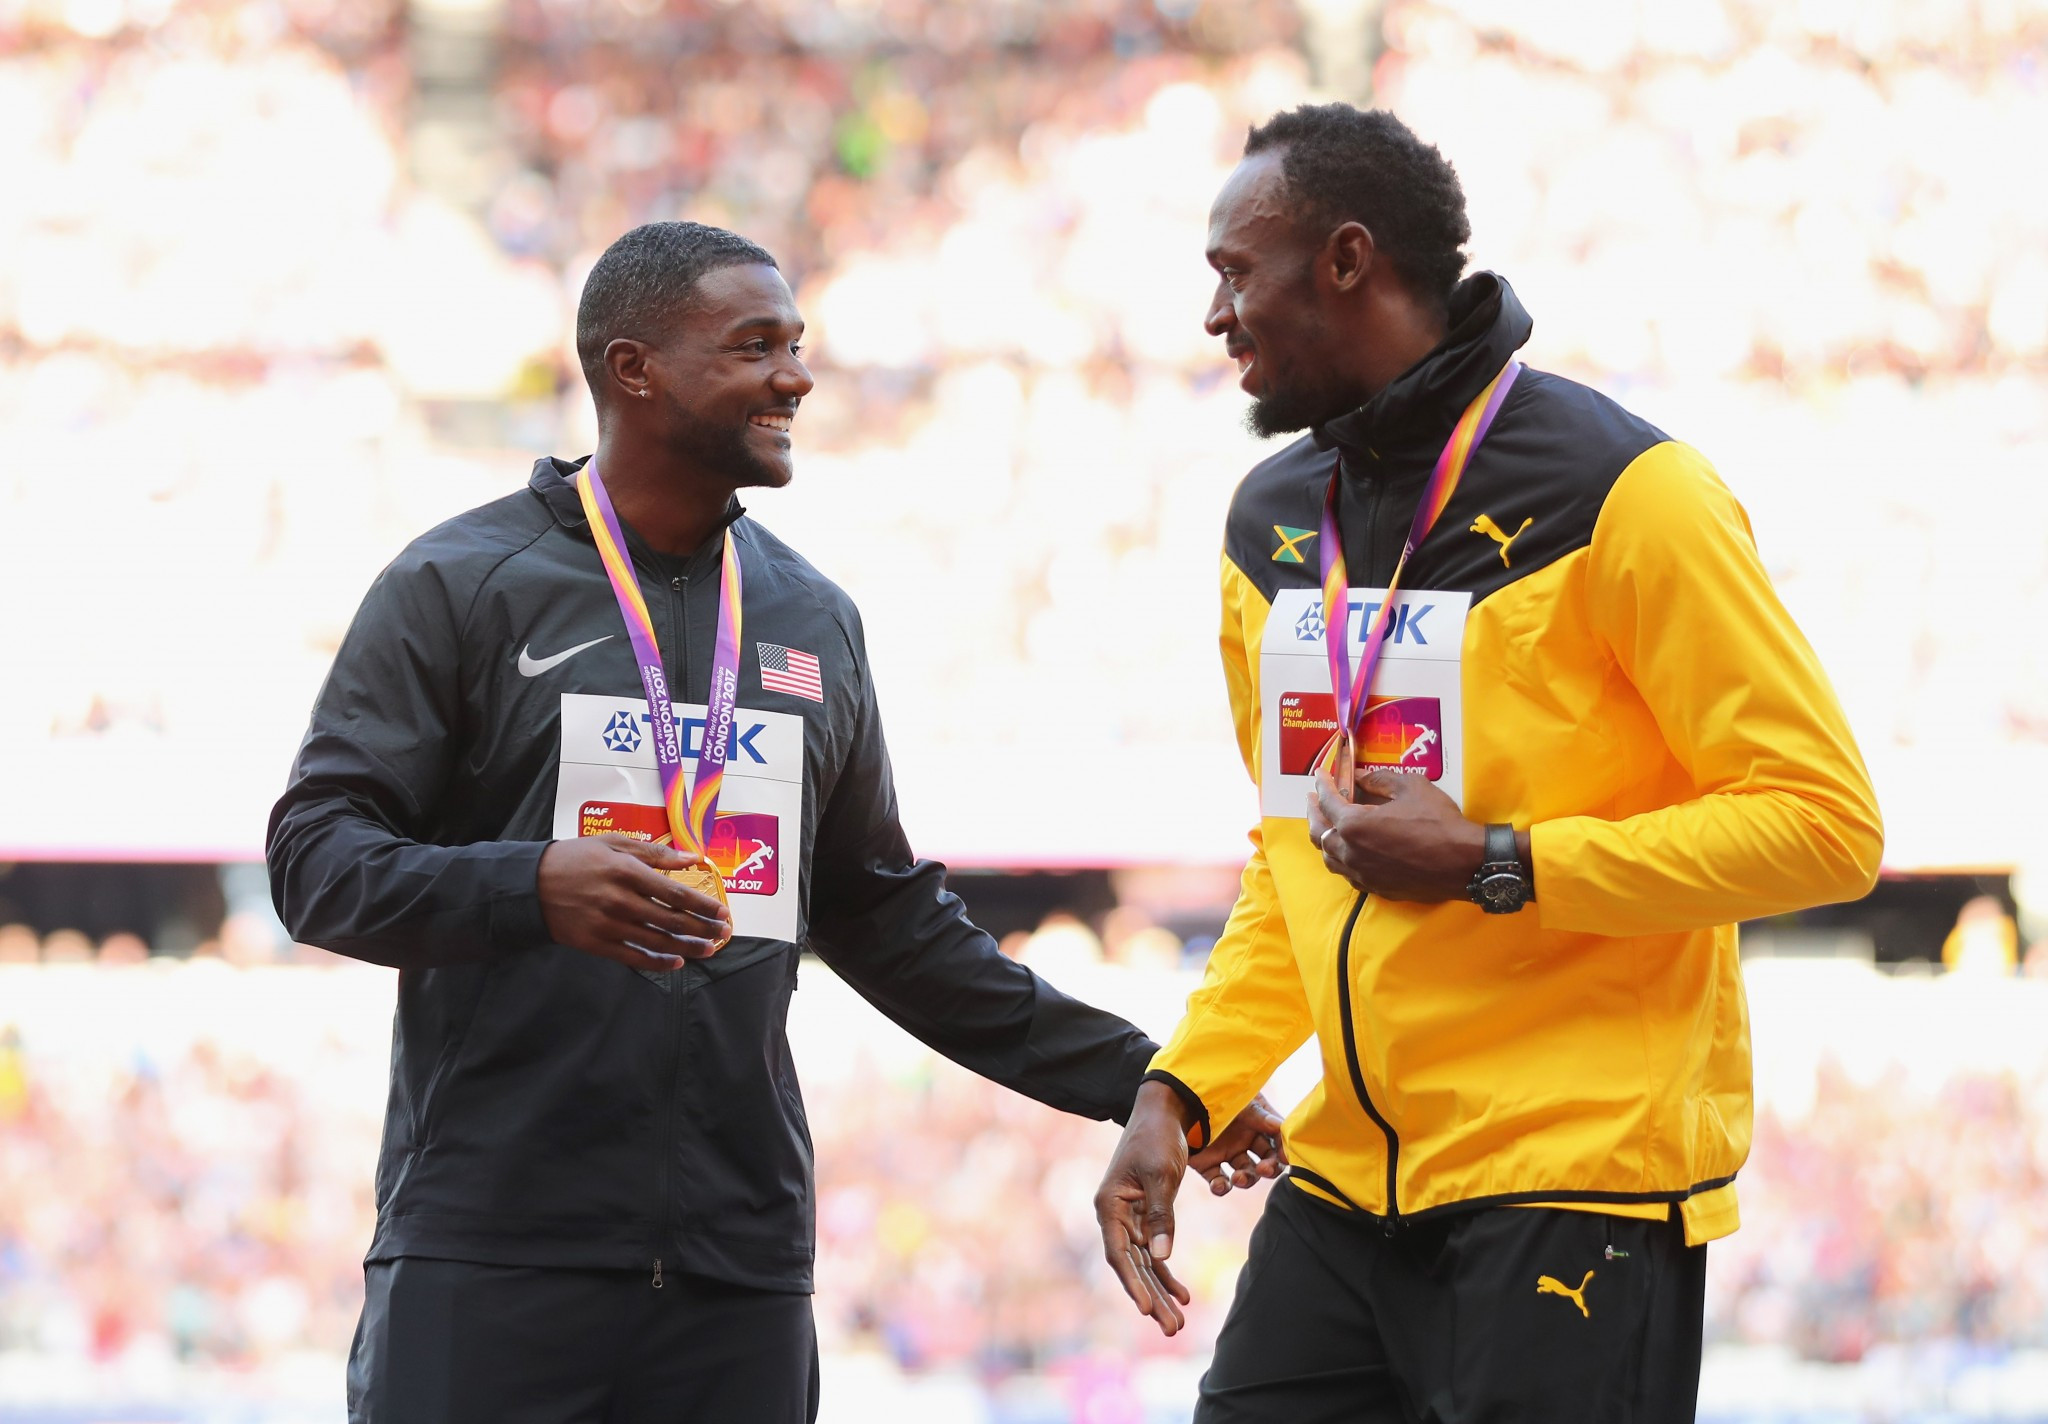 Justin Gatlin, left, gained a shock win over Christian Coleman and Usain Bolt, right ©Getty Images